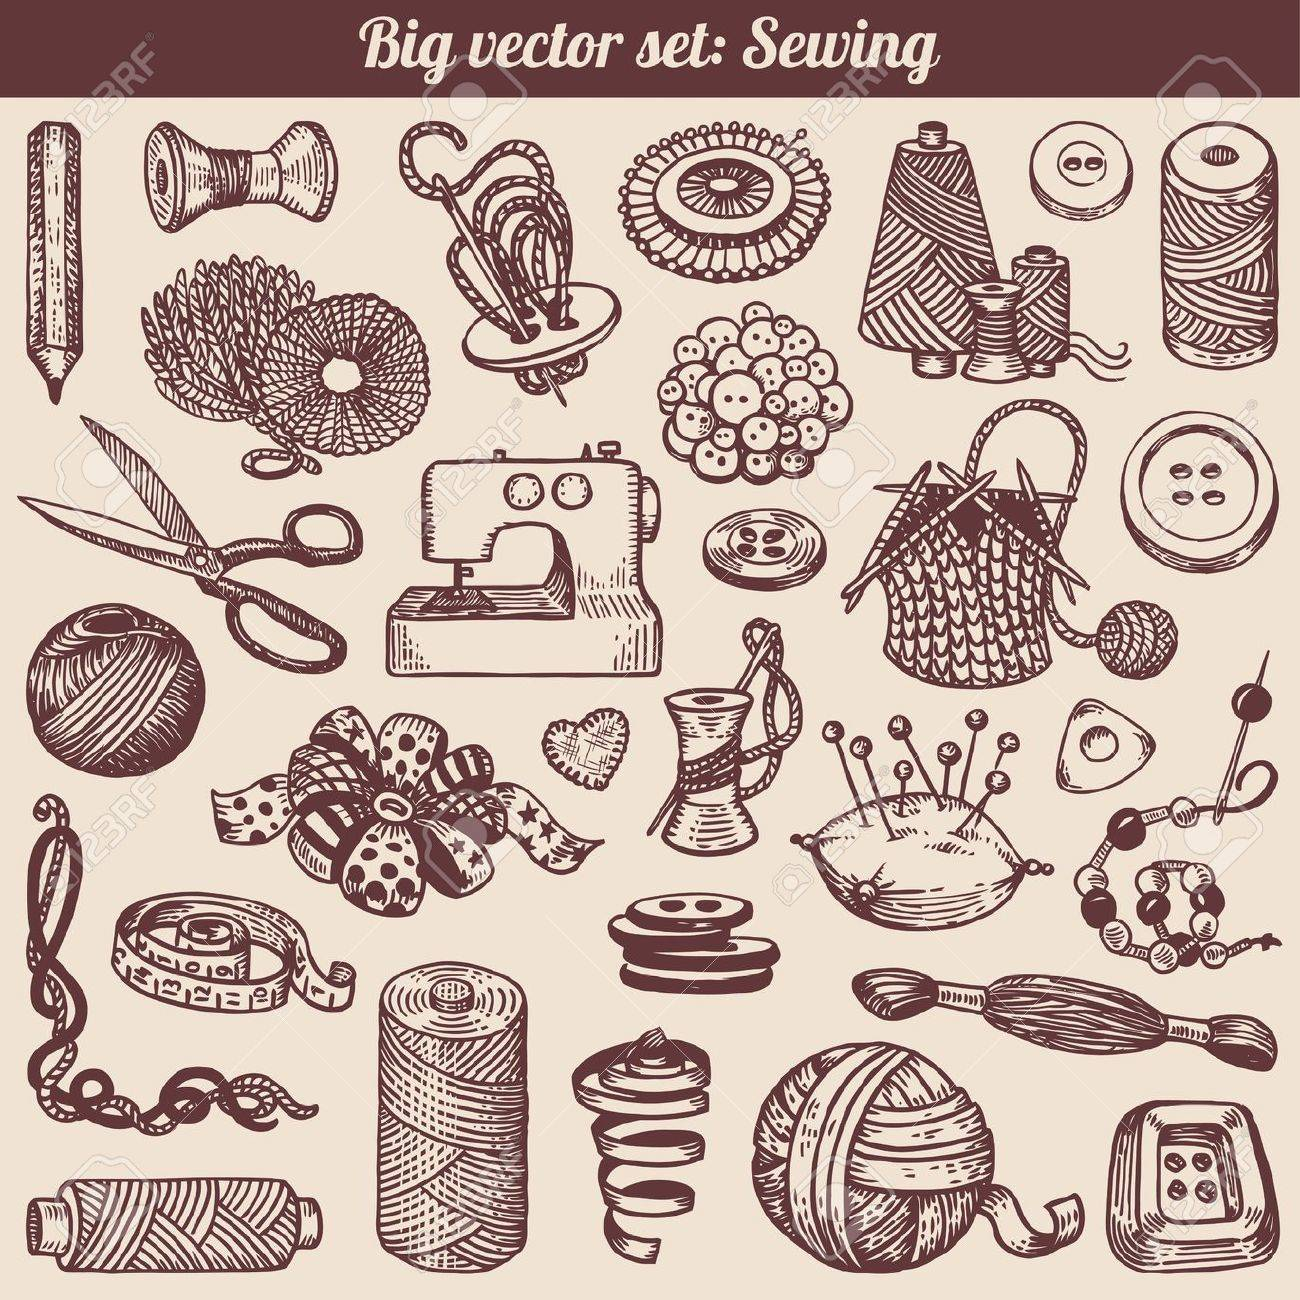 Sewing Machine Needle Clipart Sewing Machine Needle Sewing